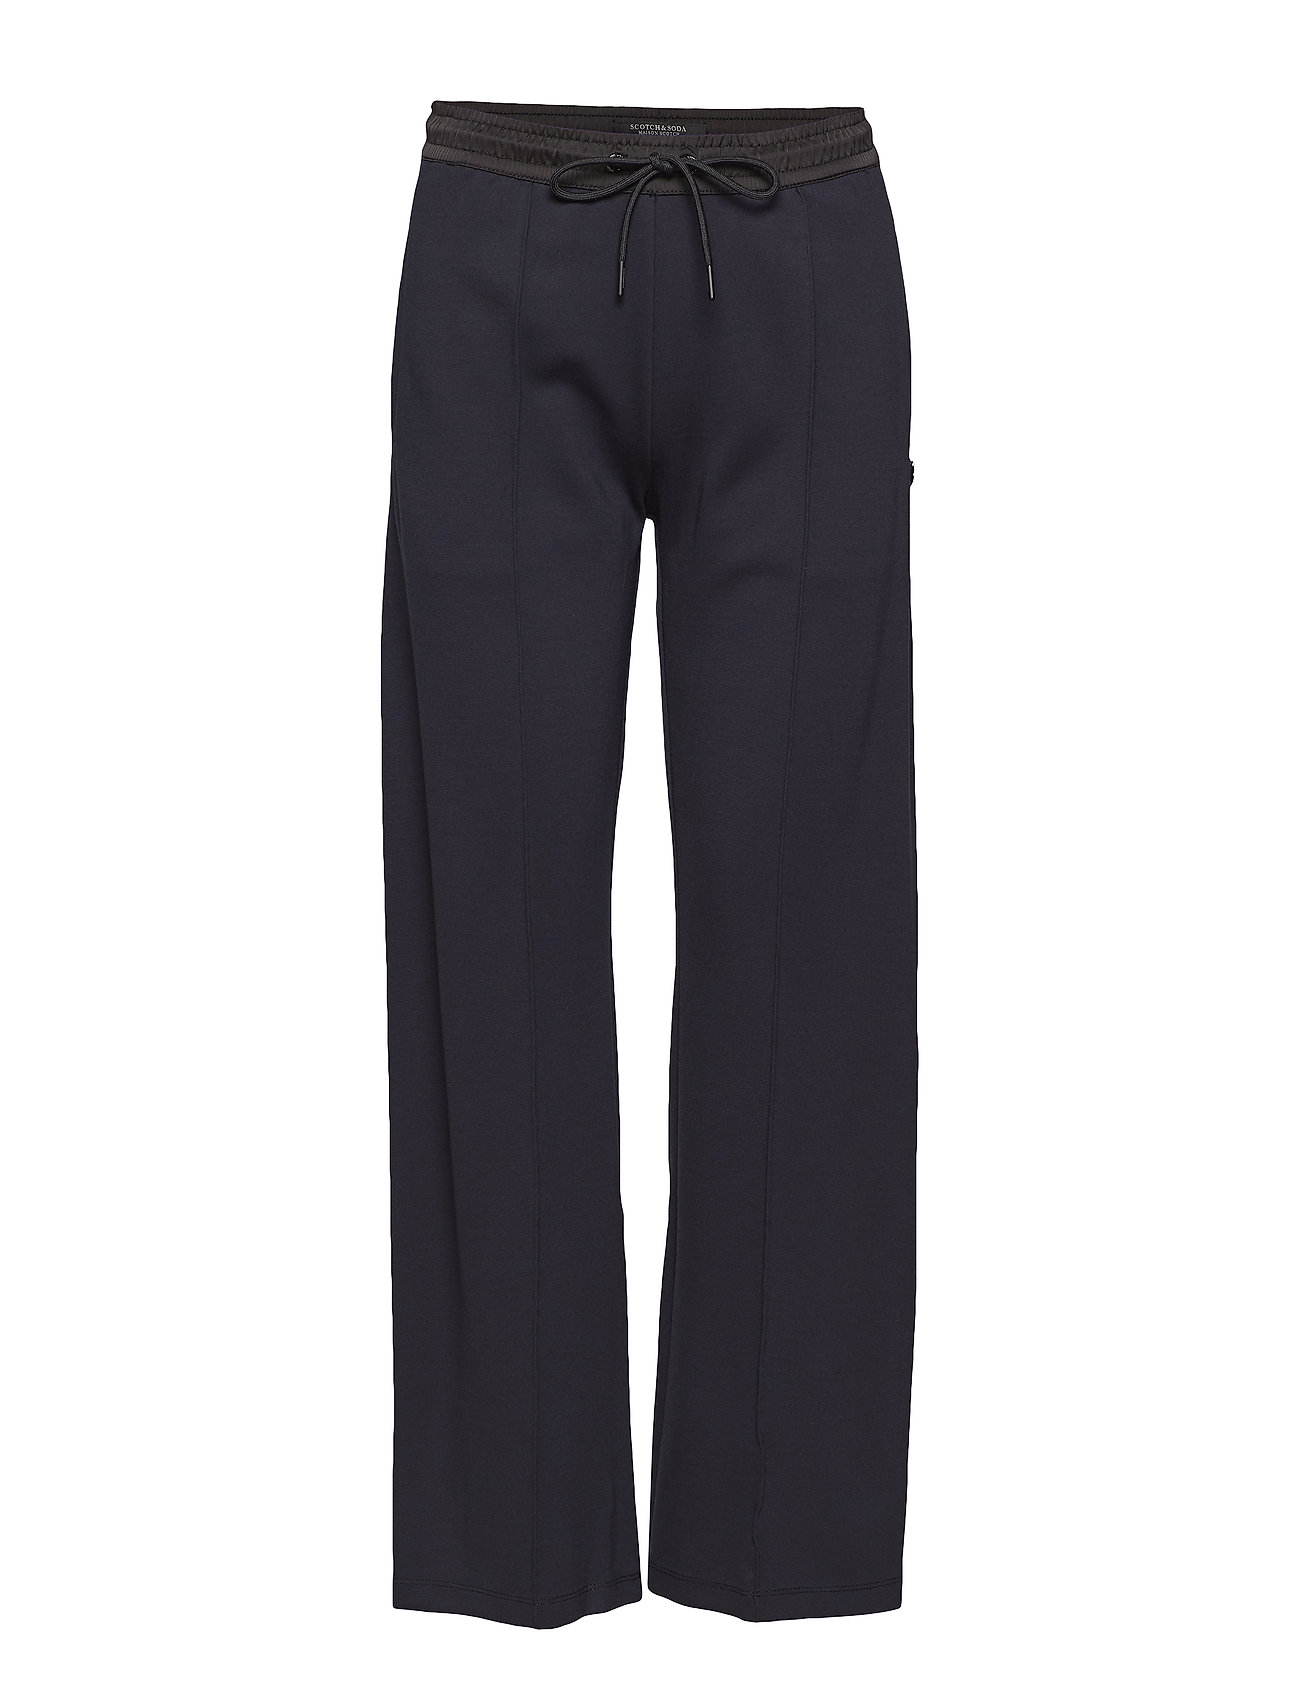 Scotch & Soda Clean sweat pants with contrast woven waistband Byxor